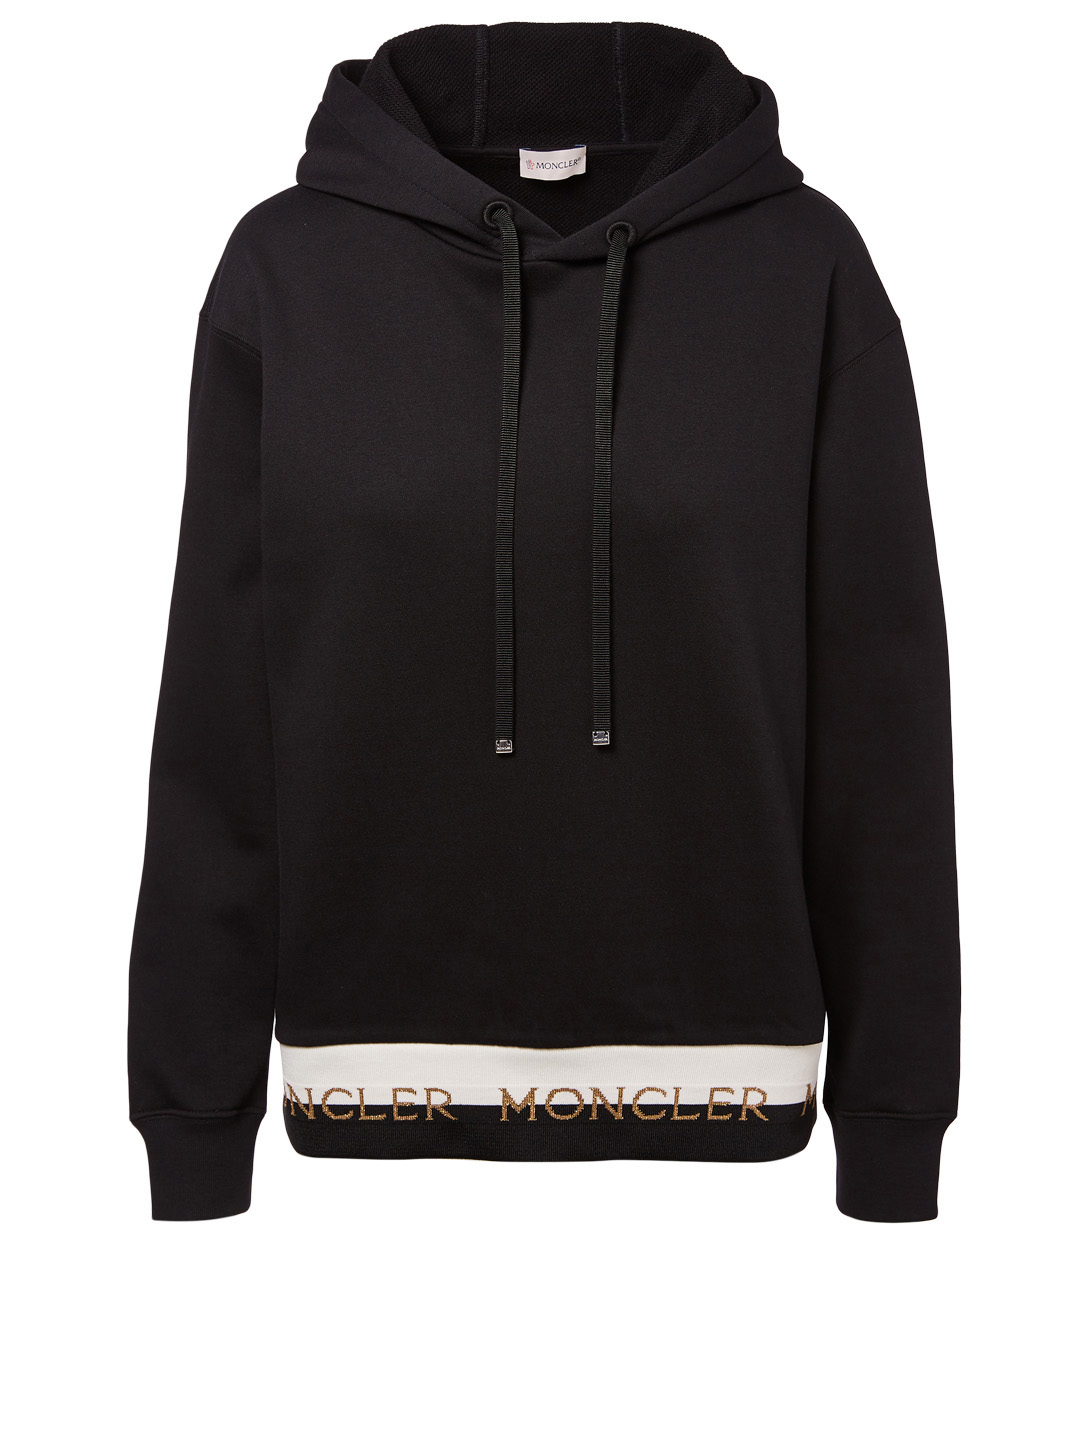 ca57c24aa0e6 MONCLER Hoodie With Logo Band   Holt Renfrew